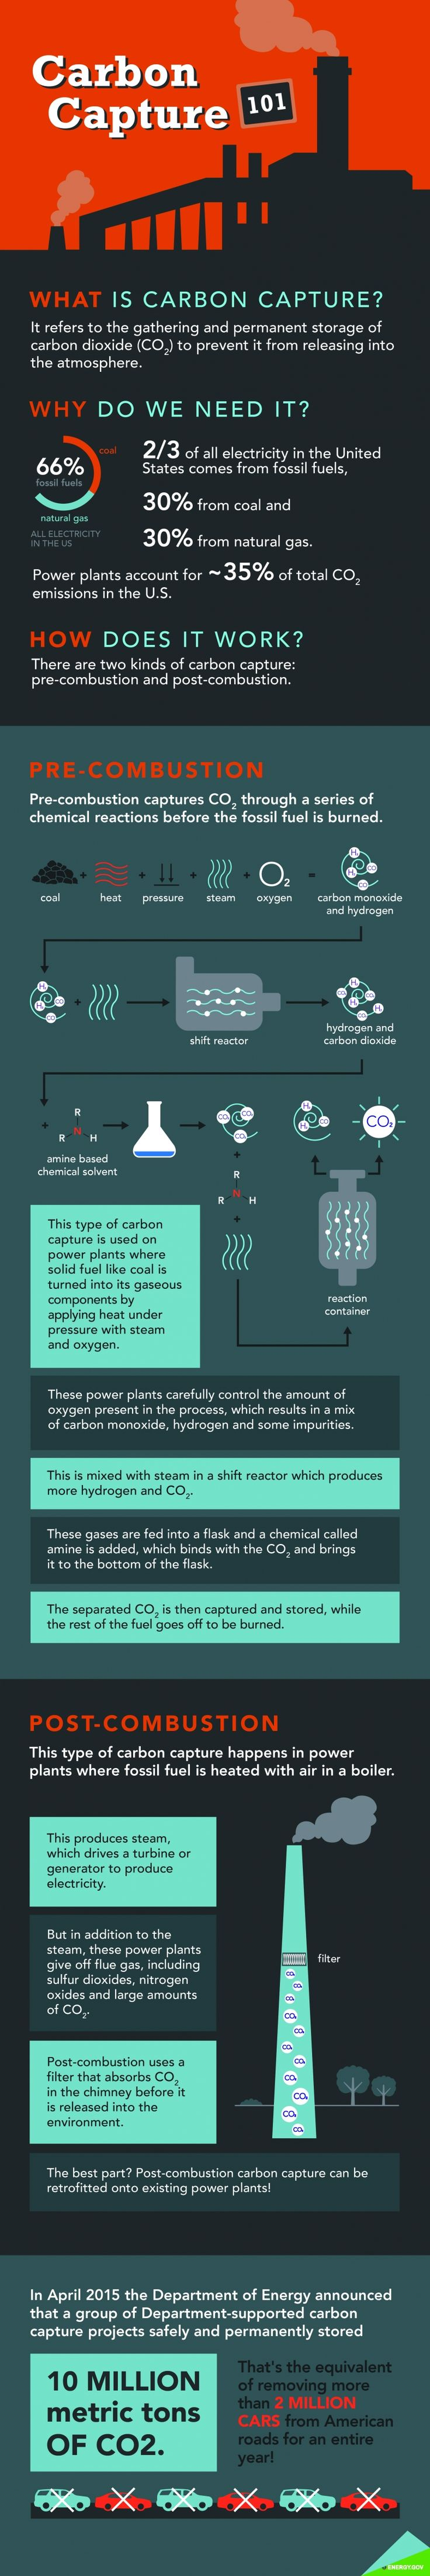 """Carbon capture is an important part of the Energy Department's Fossil Energy research and development efforts, but it can be hard to understand. This infographic breaks it down for you.   Infographic by <a href=""""/node/1332956"""">Carly Wilkins</a>, Energy Department."""